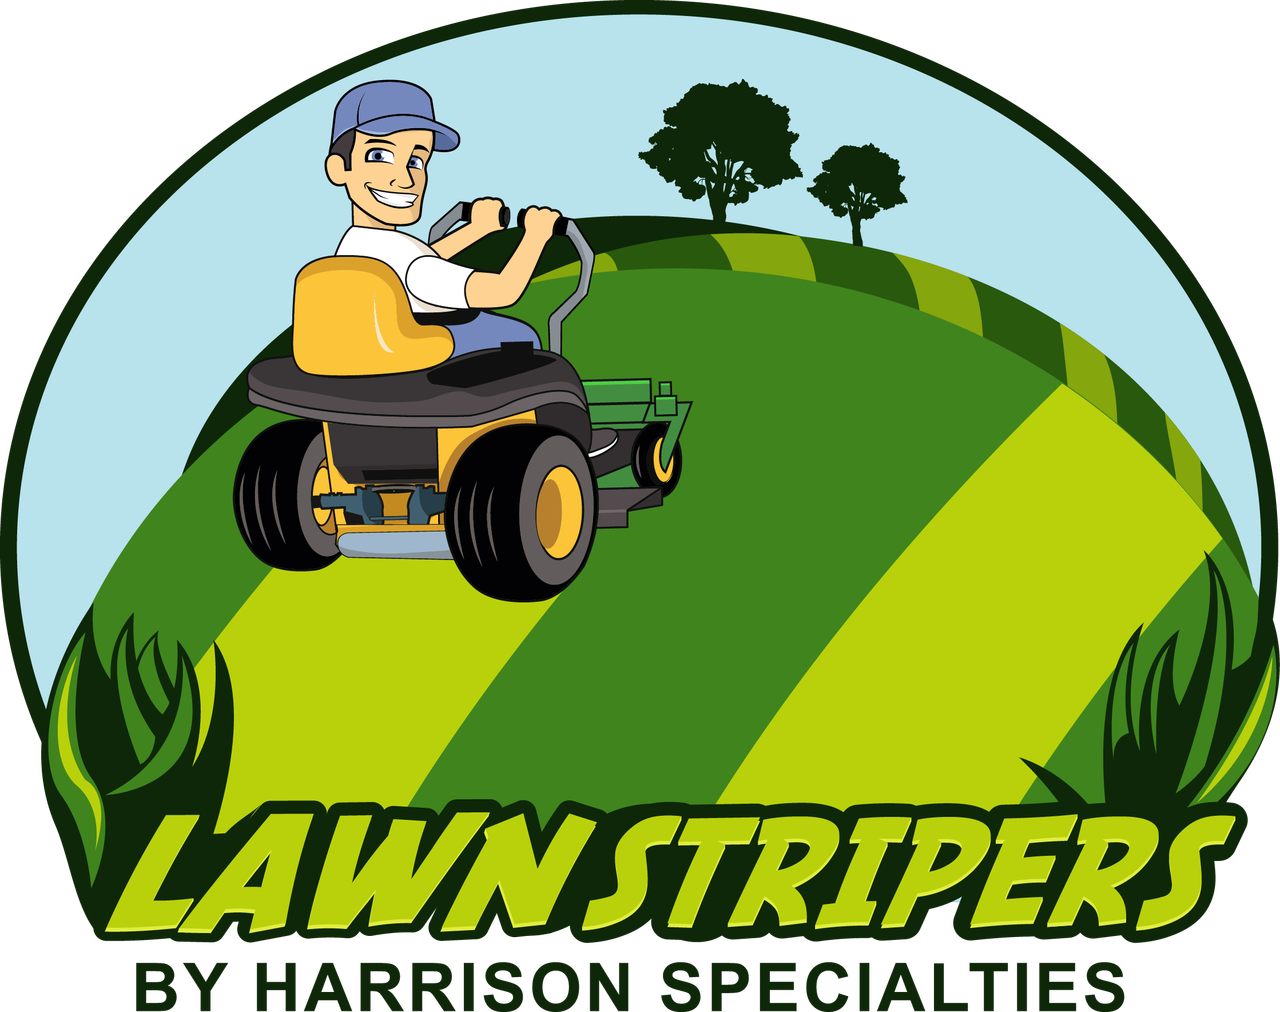 Lawn Stripers by Harrison Specialties